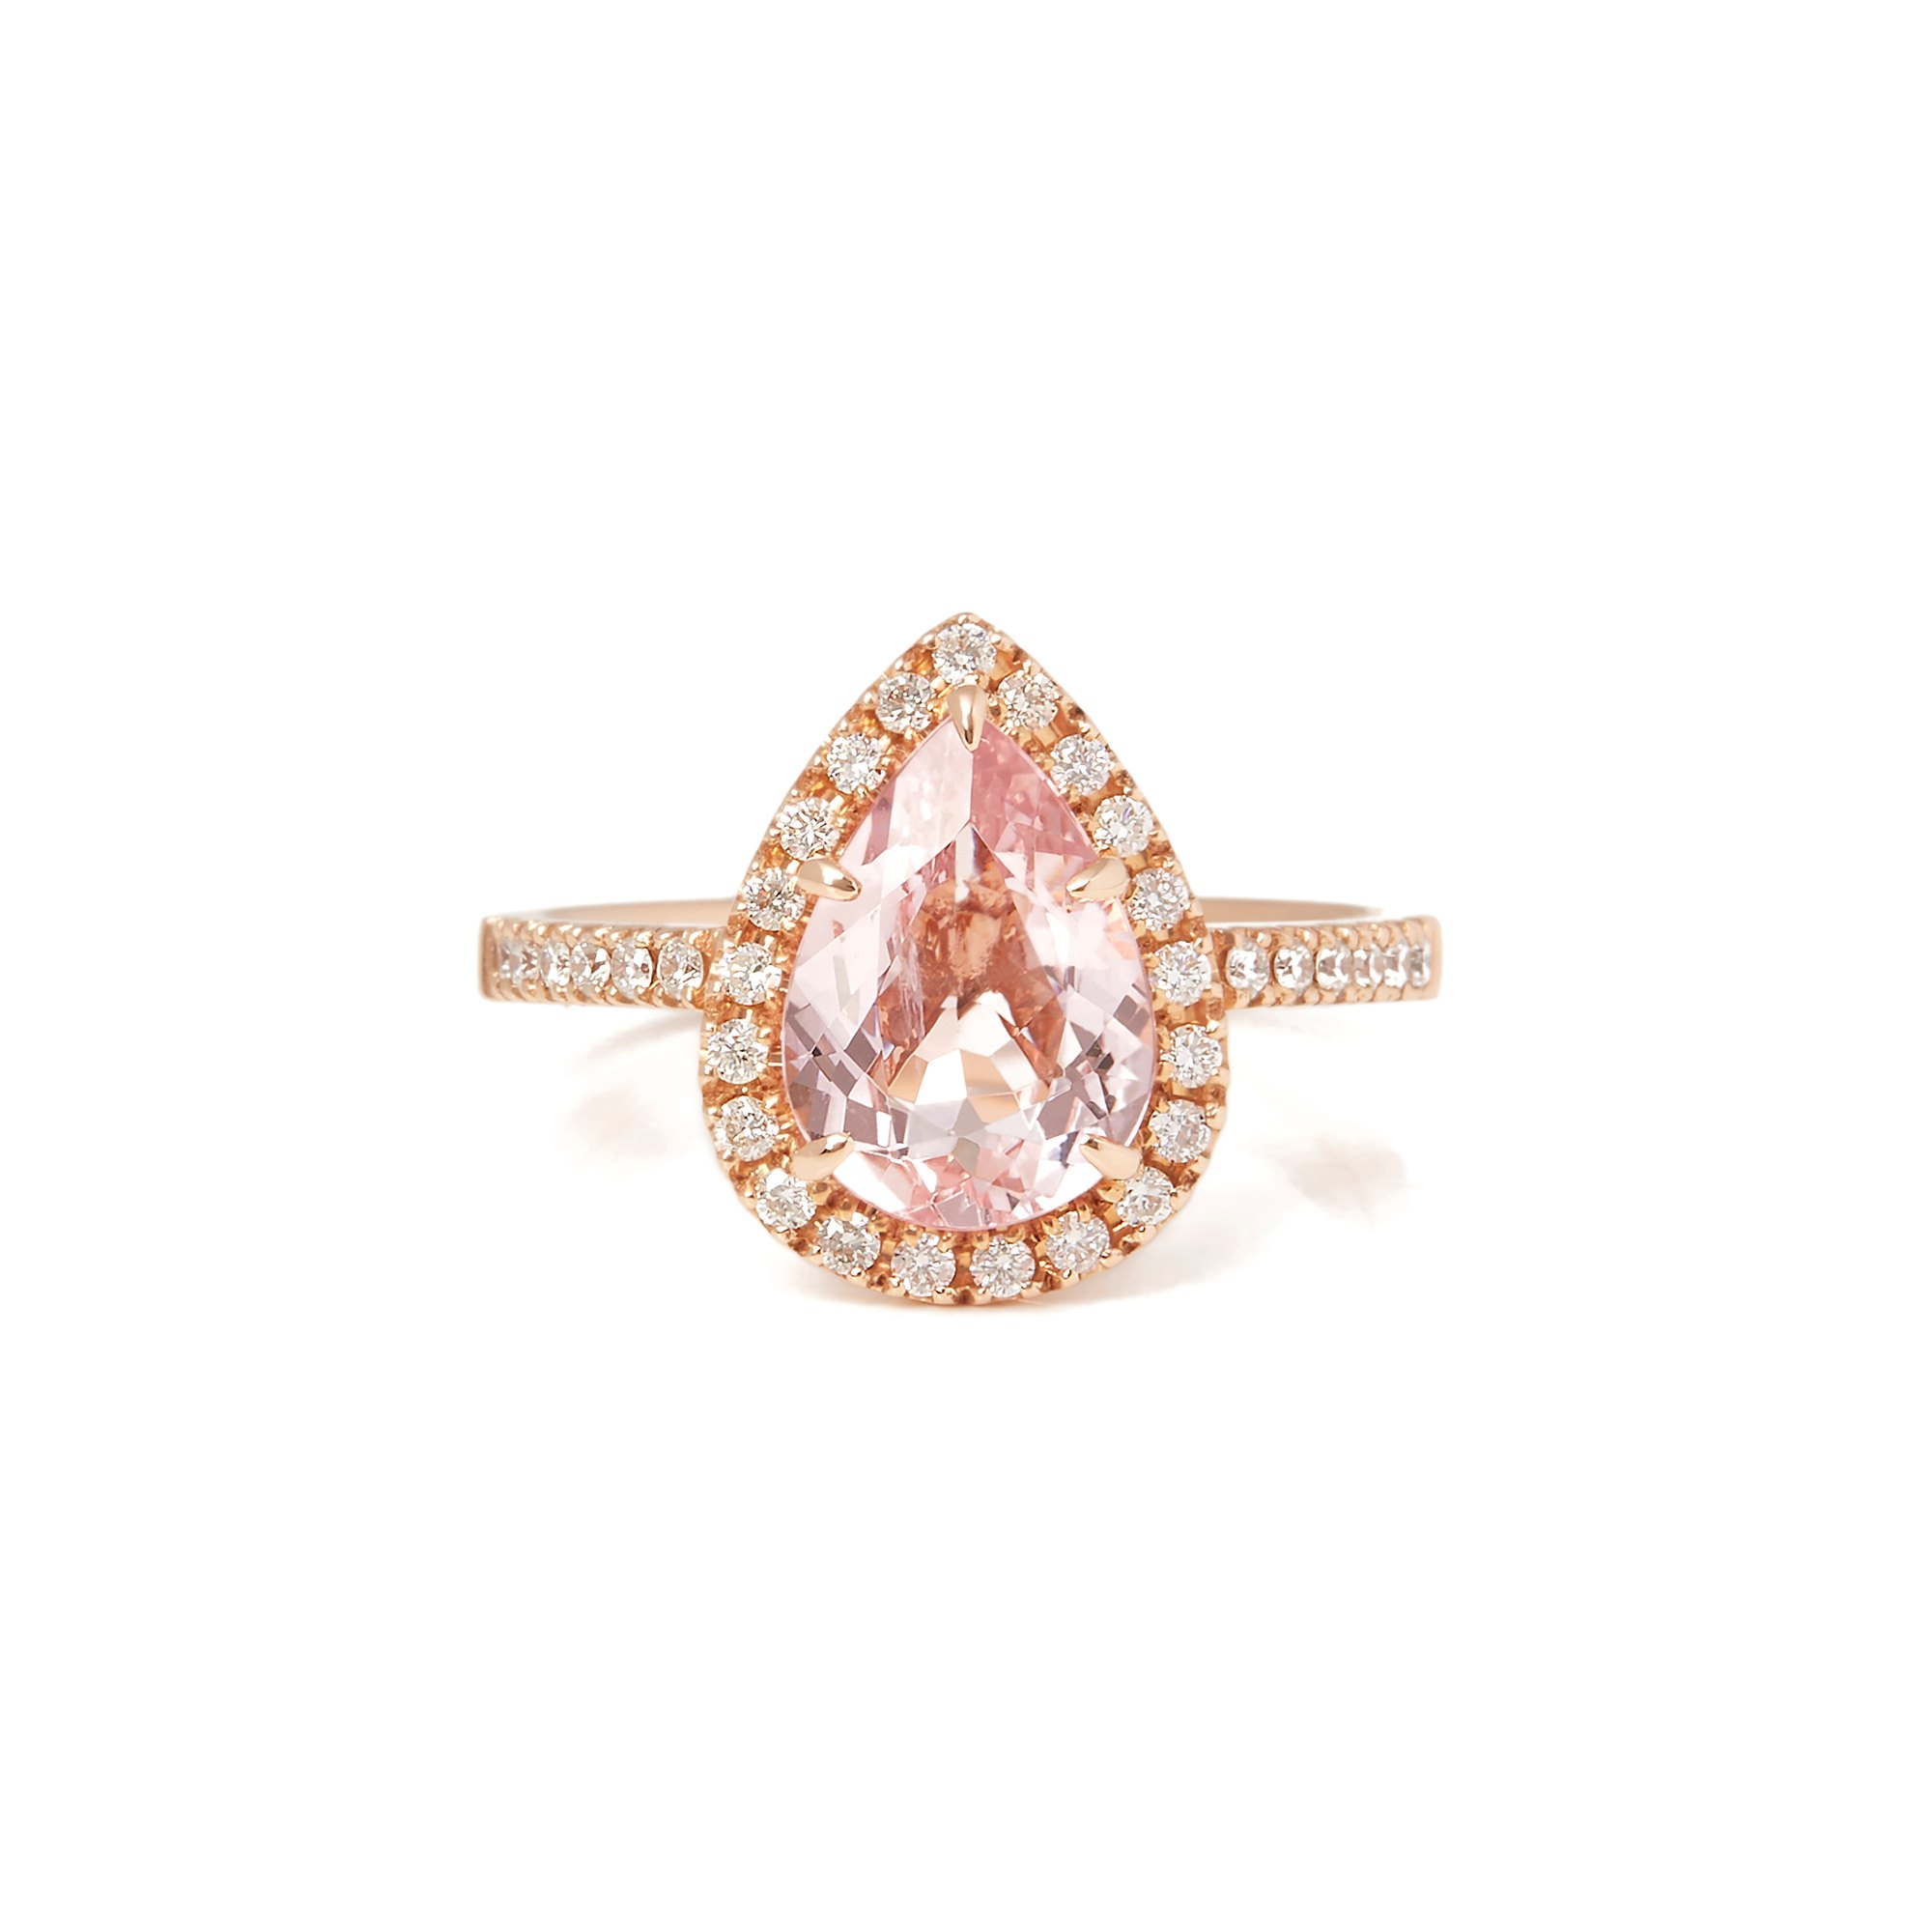 David Jerome Certified 1.84ct Pear Cut Morganite and Diamond 18ct gold Ring